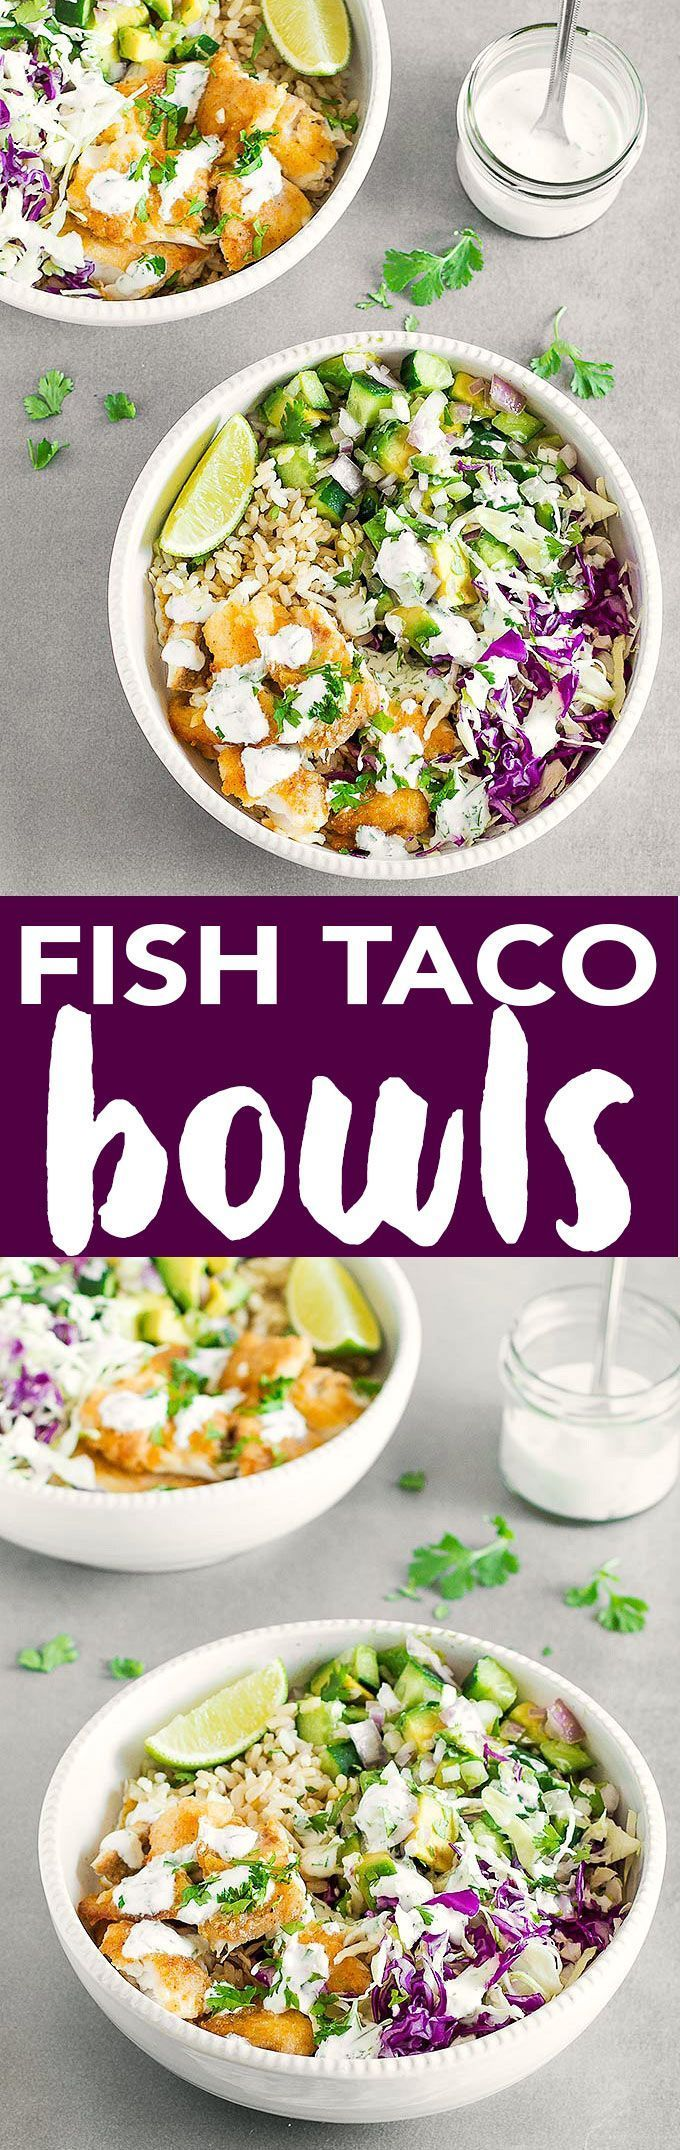 Tacos taco bowls and awesome on pinterest for Sides for fish tacos